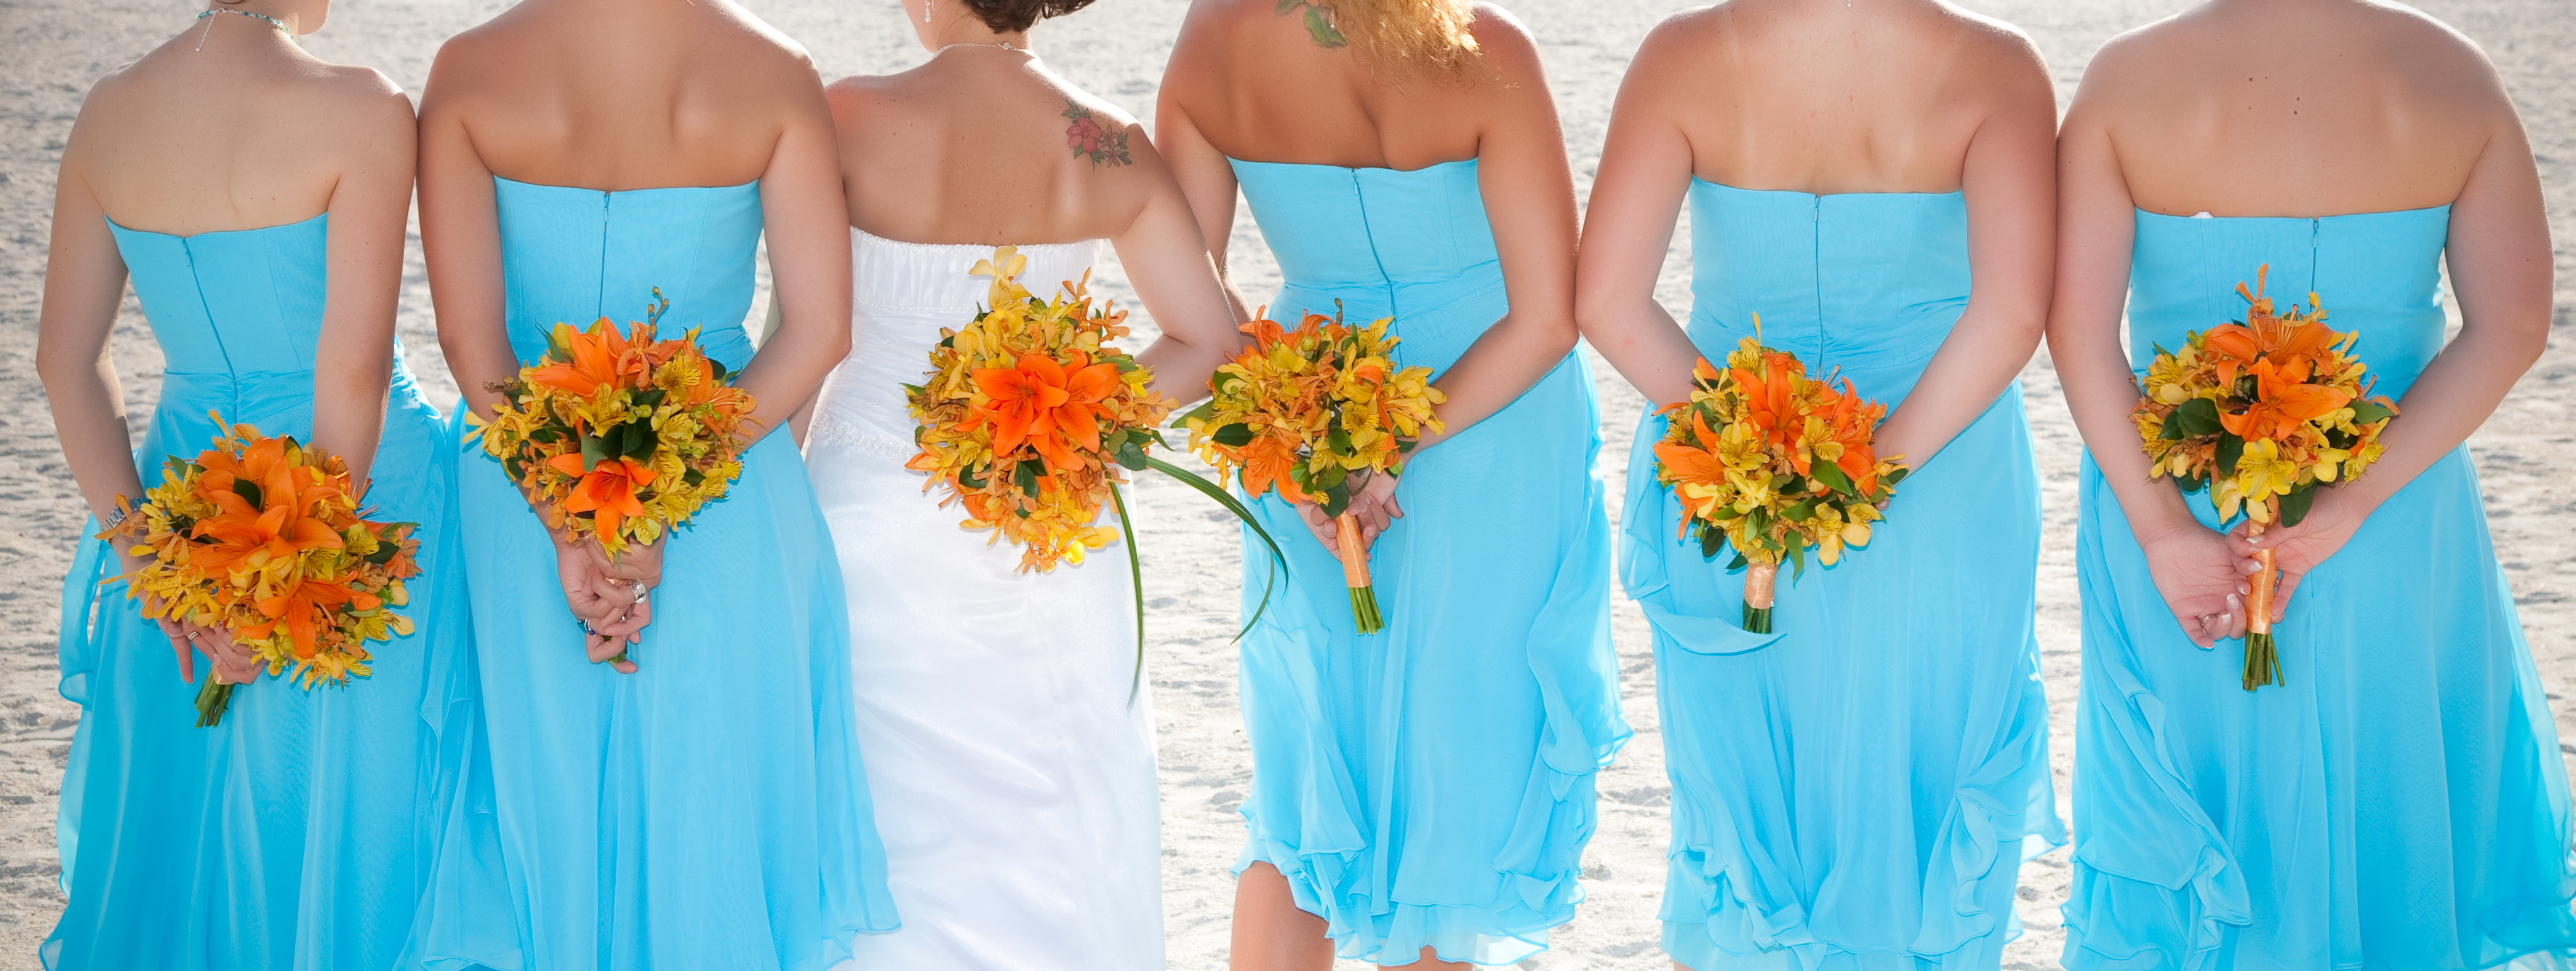 Dang The Color And Dresses Both Are Perfect Wedding Lt 3 Pinterest Orange Flowers Green Bridesmaids Heather O 39 Rourke